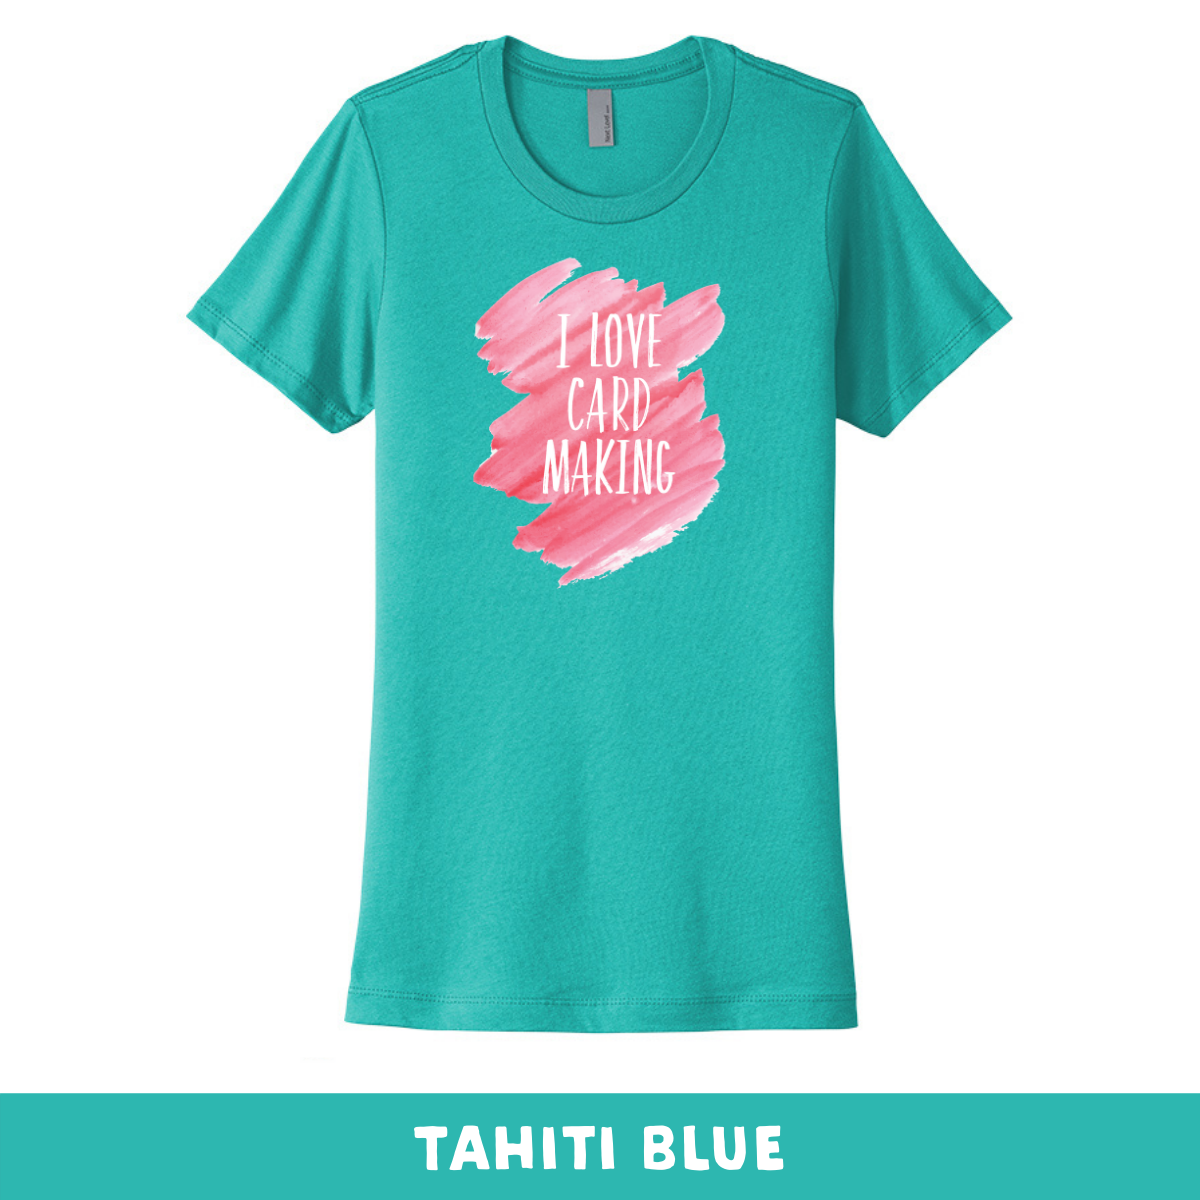 Tahiti Blue - Crew Neck Boyfriend Tee - I Love Cardmaking